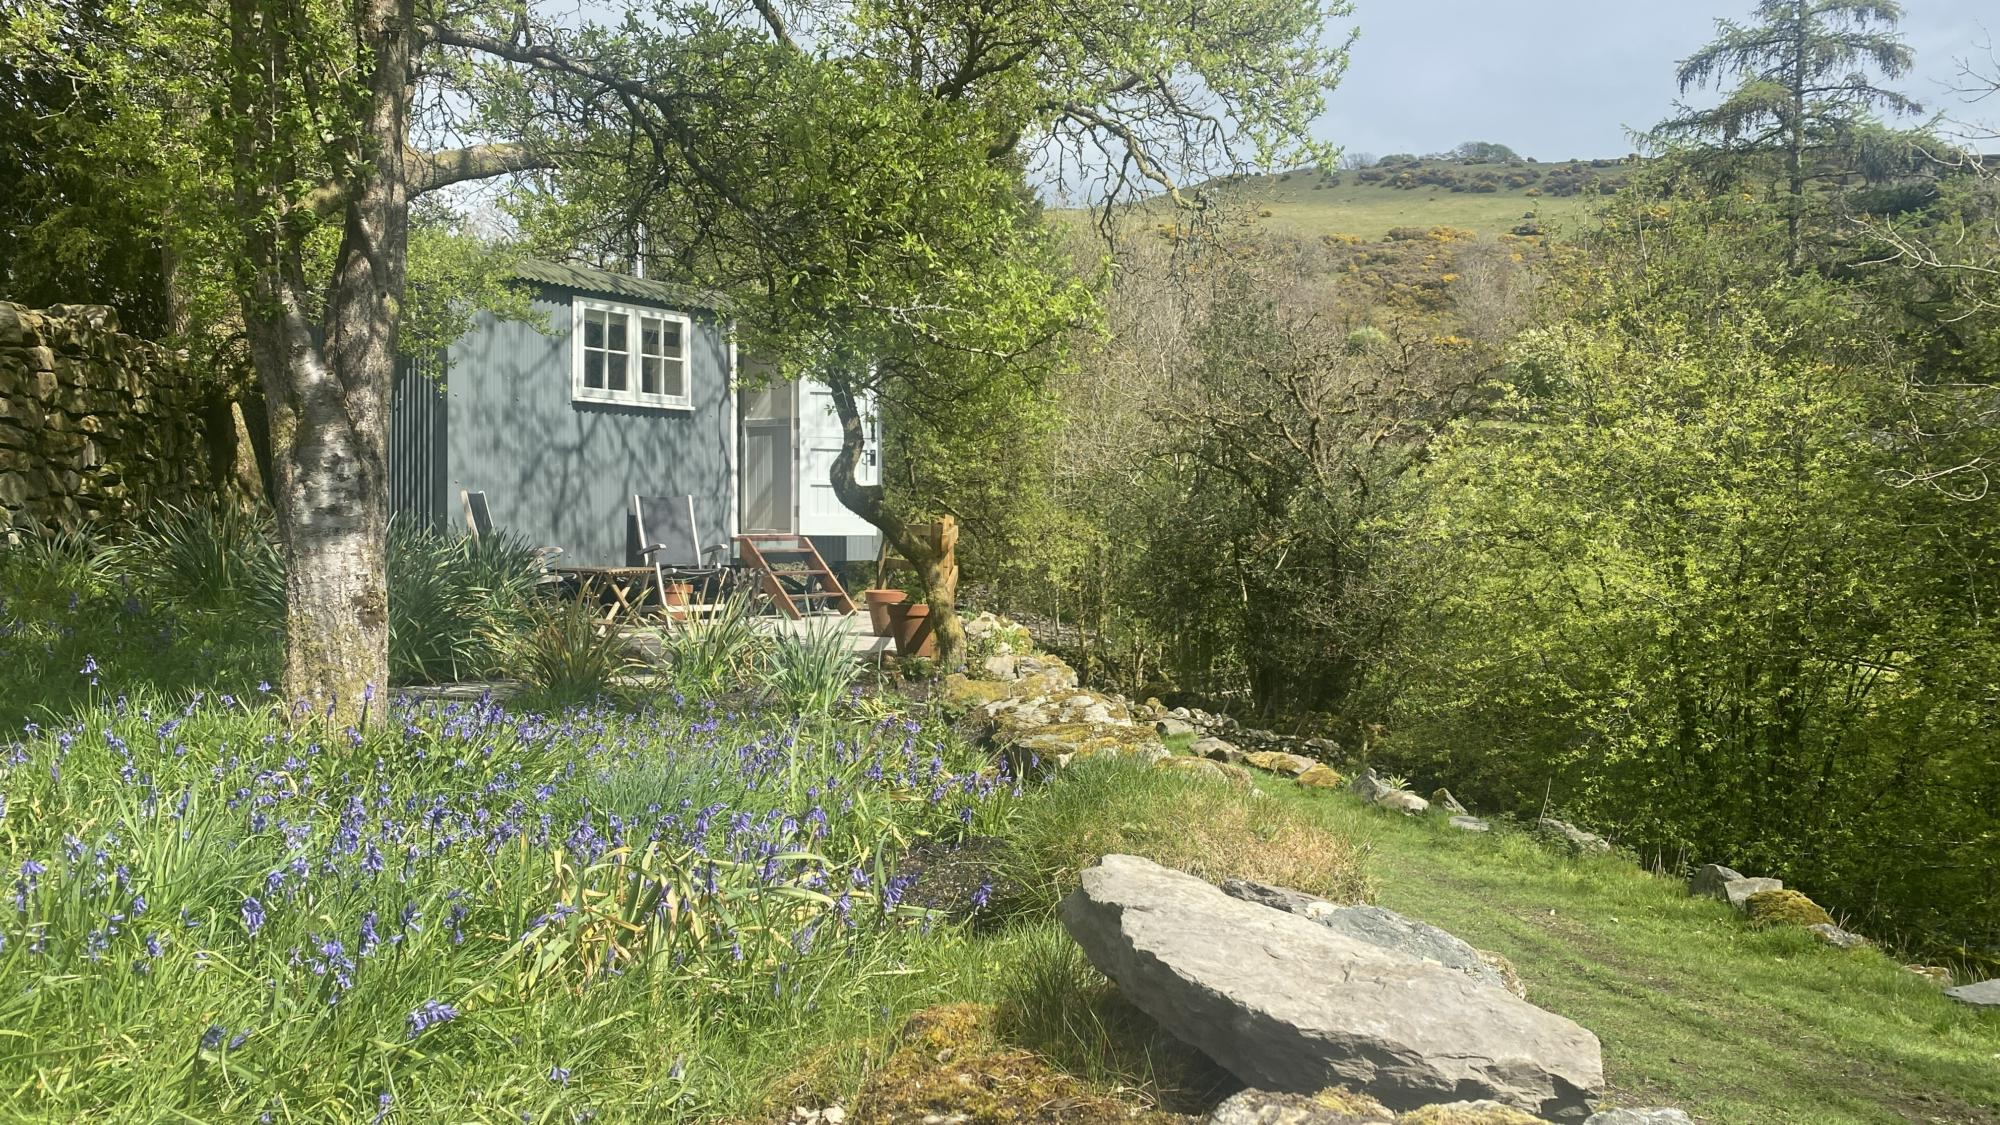 Glamping in North West England – I Love This Campsite